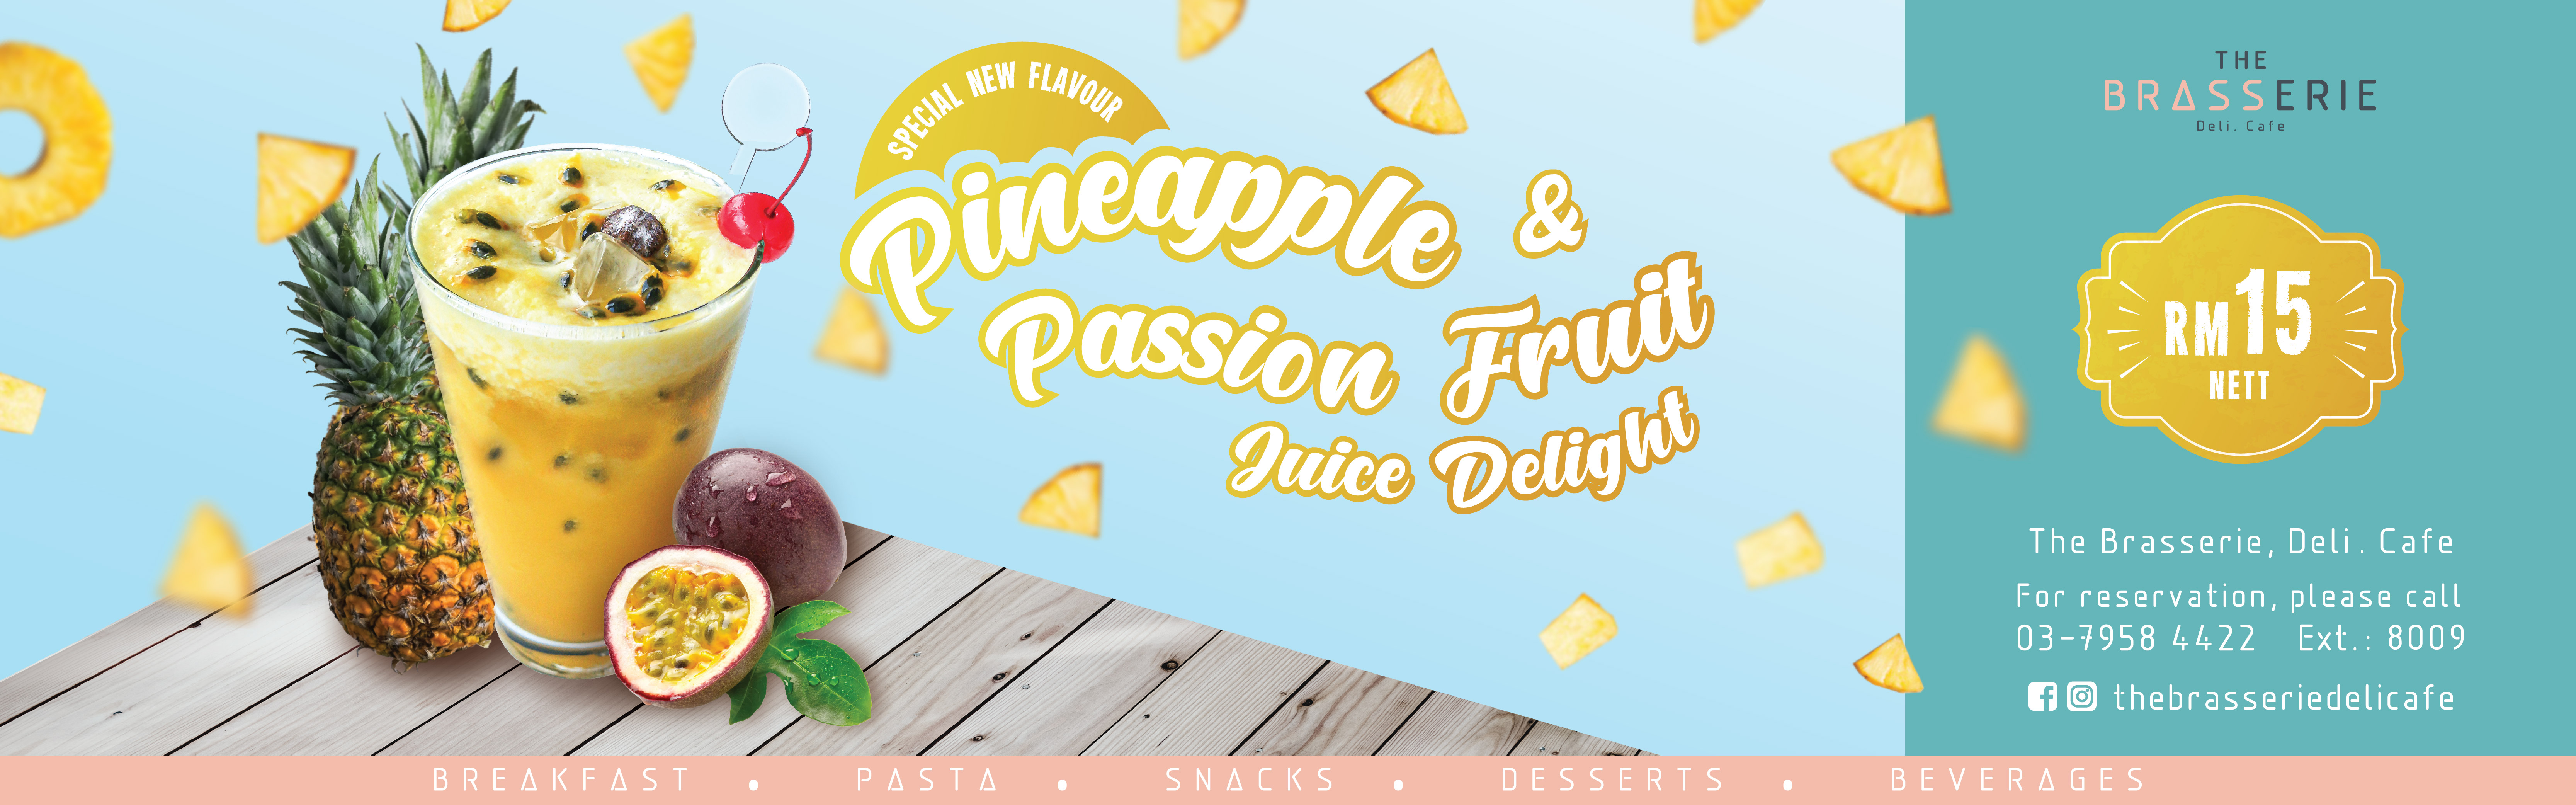 Pineapple Juice - special promotion cchpj.jpg (resized)